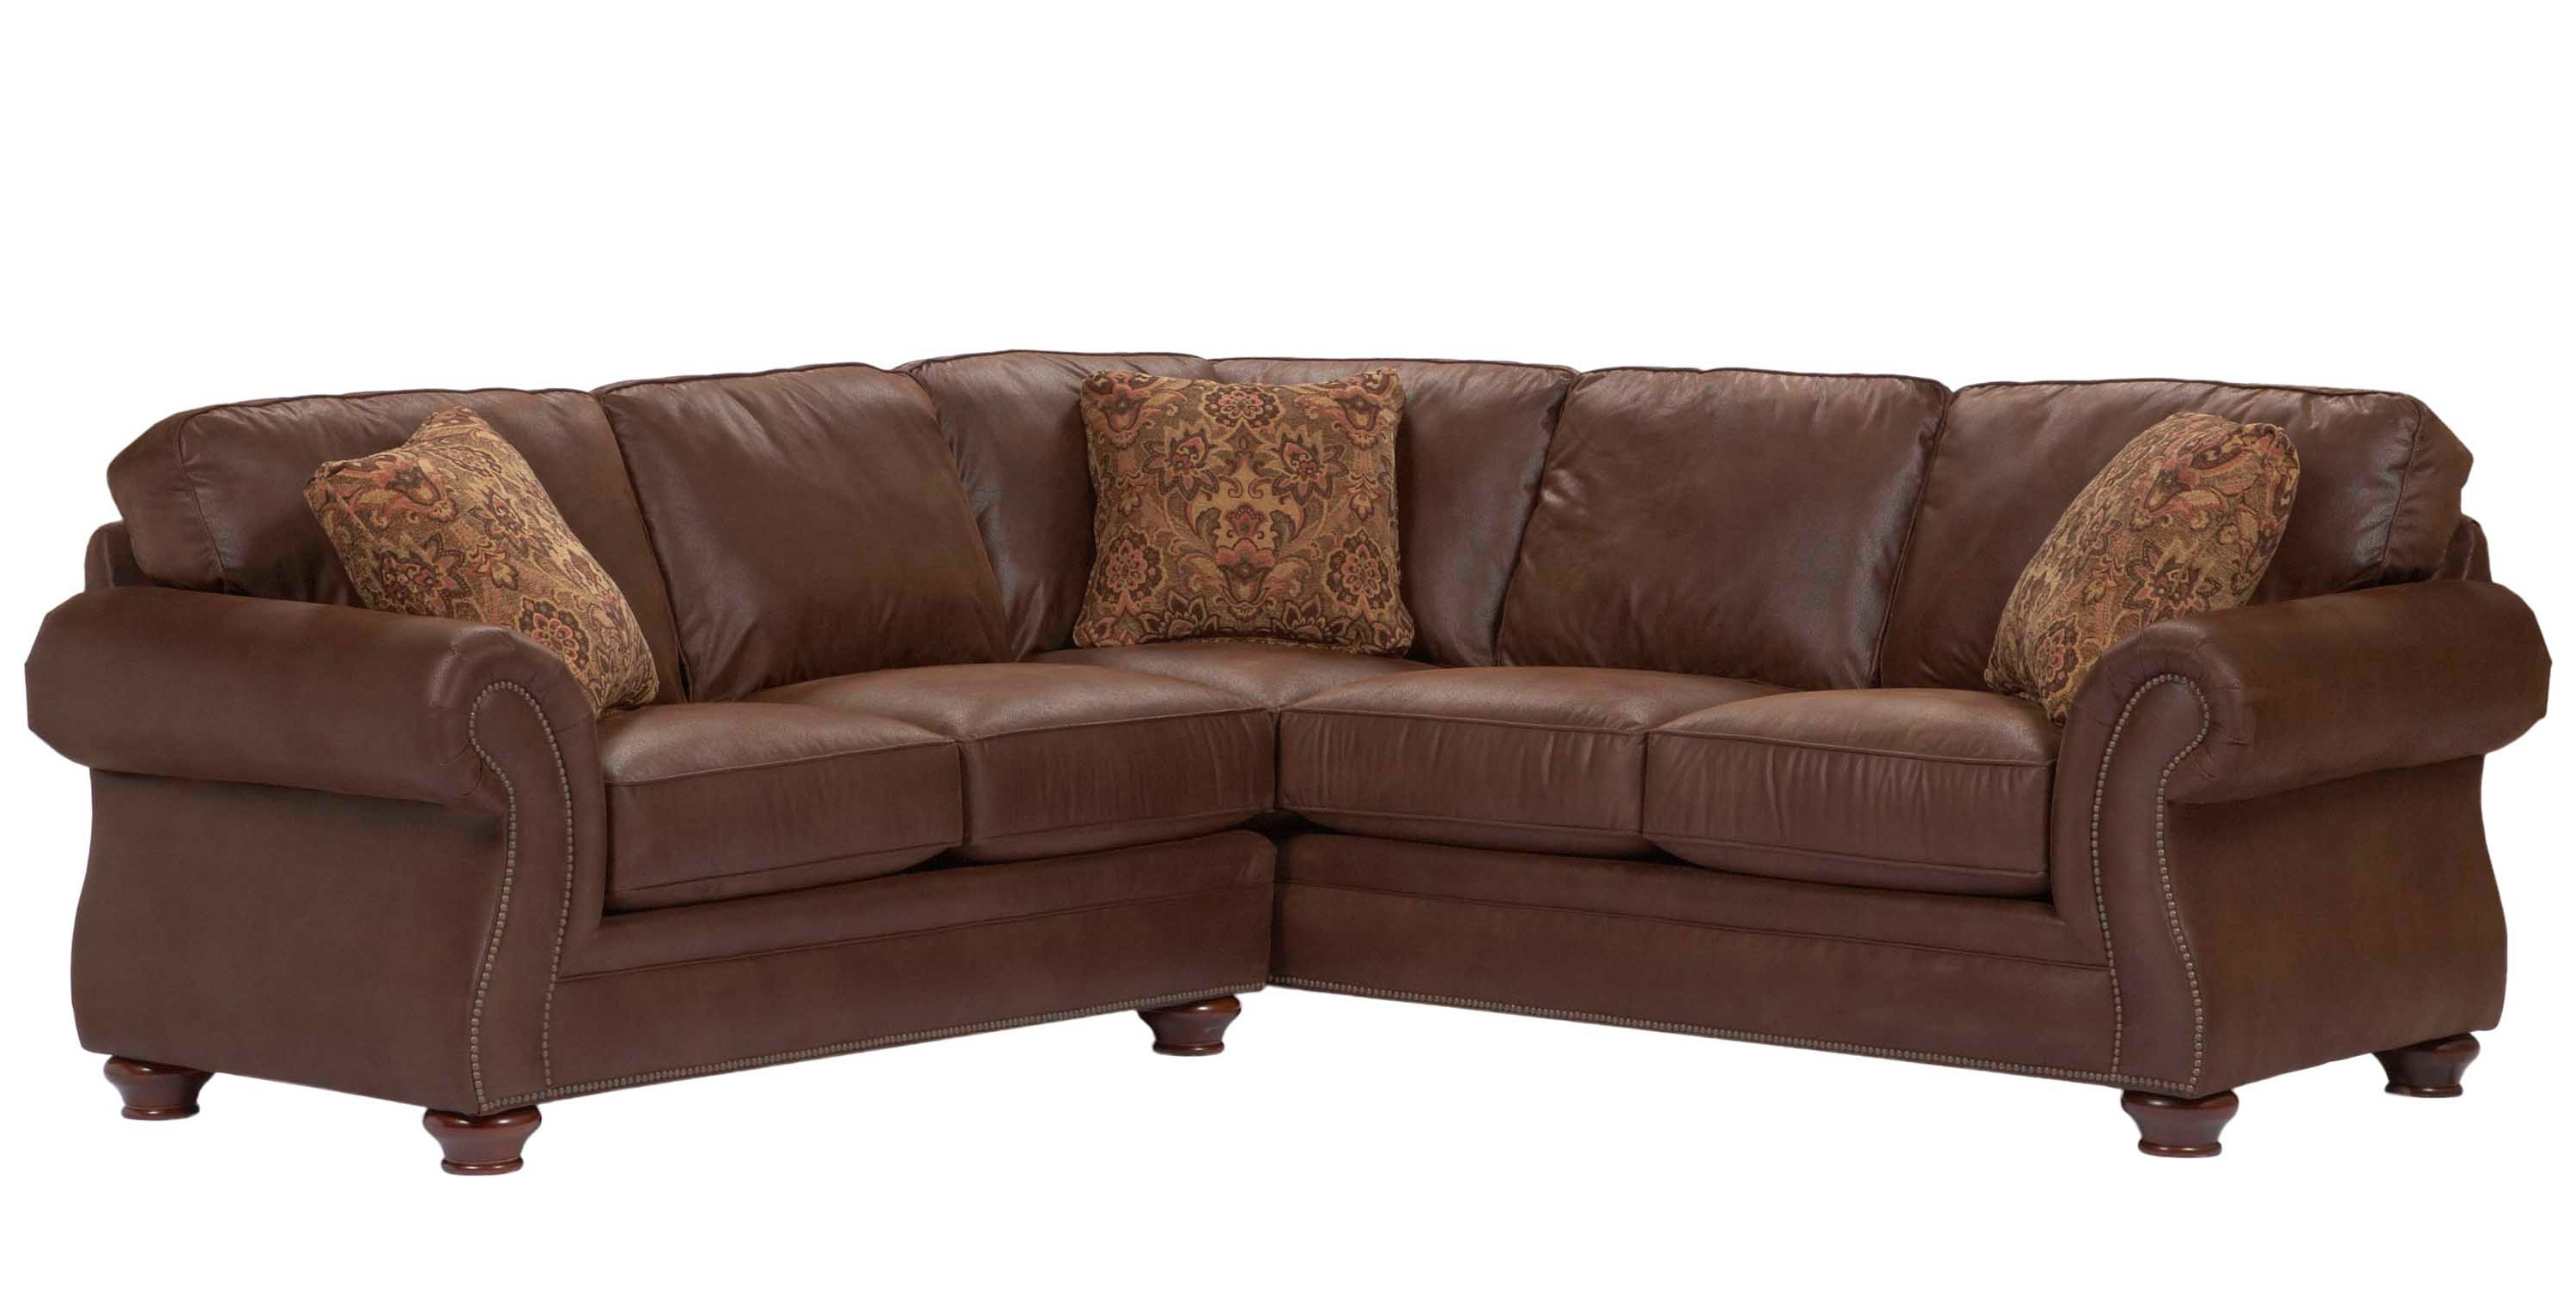 Broyhill Laramie Sectional 5080 1Q/5080 4Q In Preferred Broyhill Sectional Sofas (View 5 of 15)